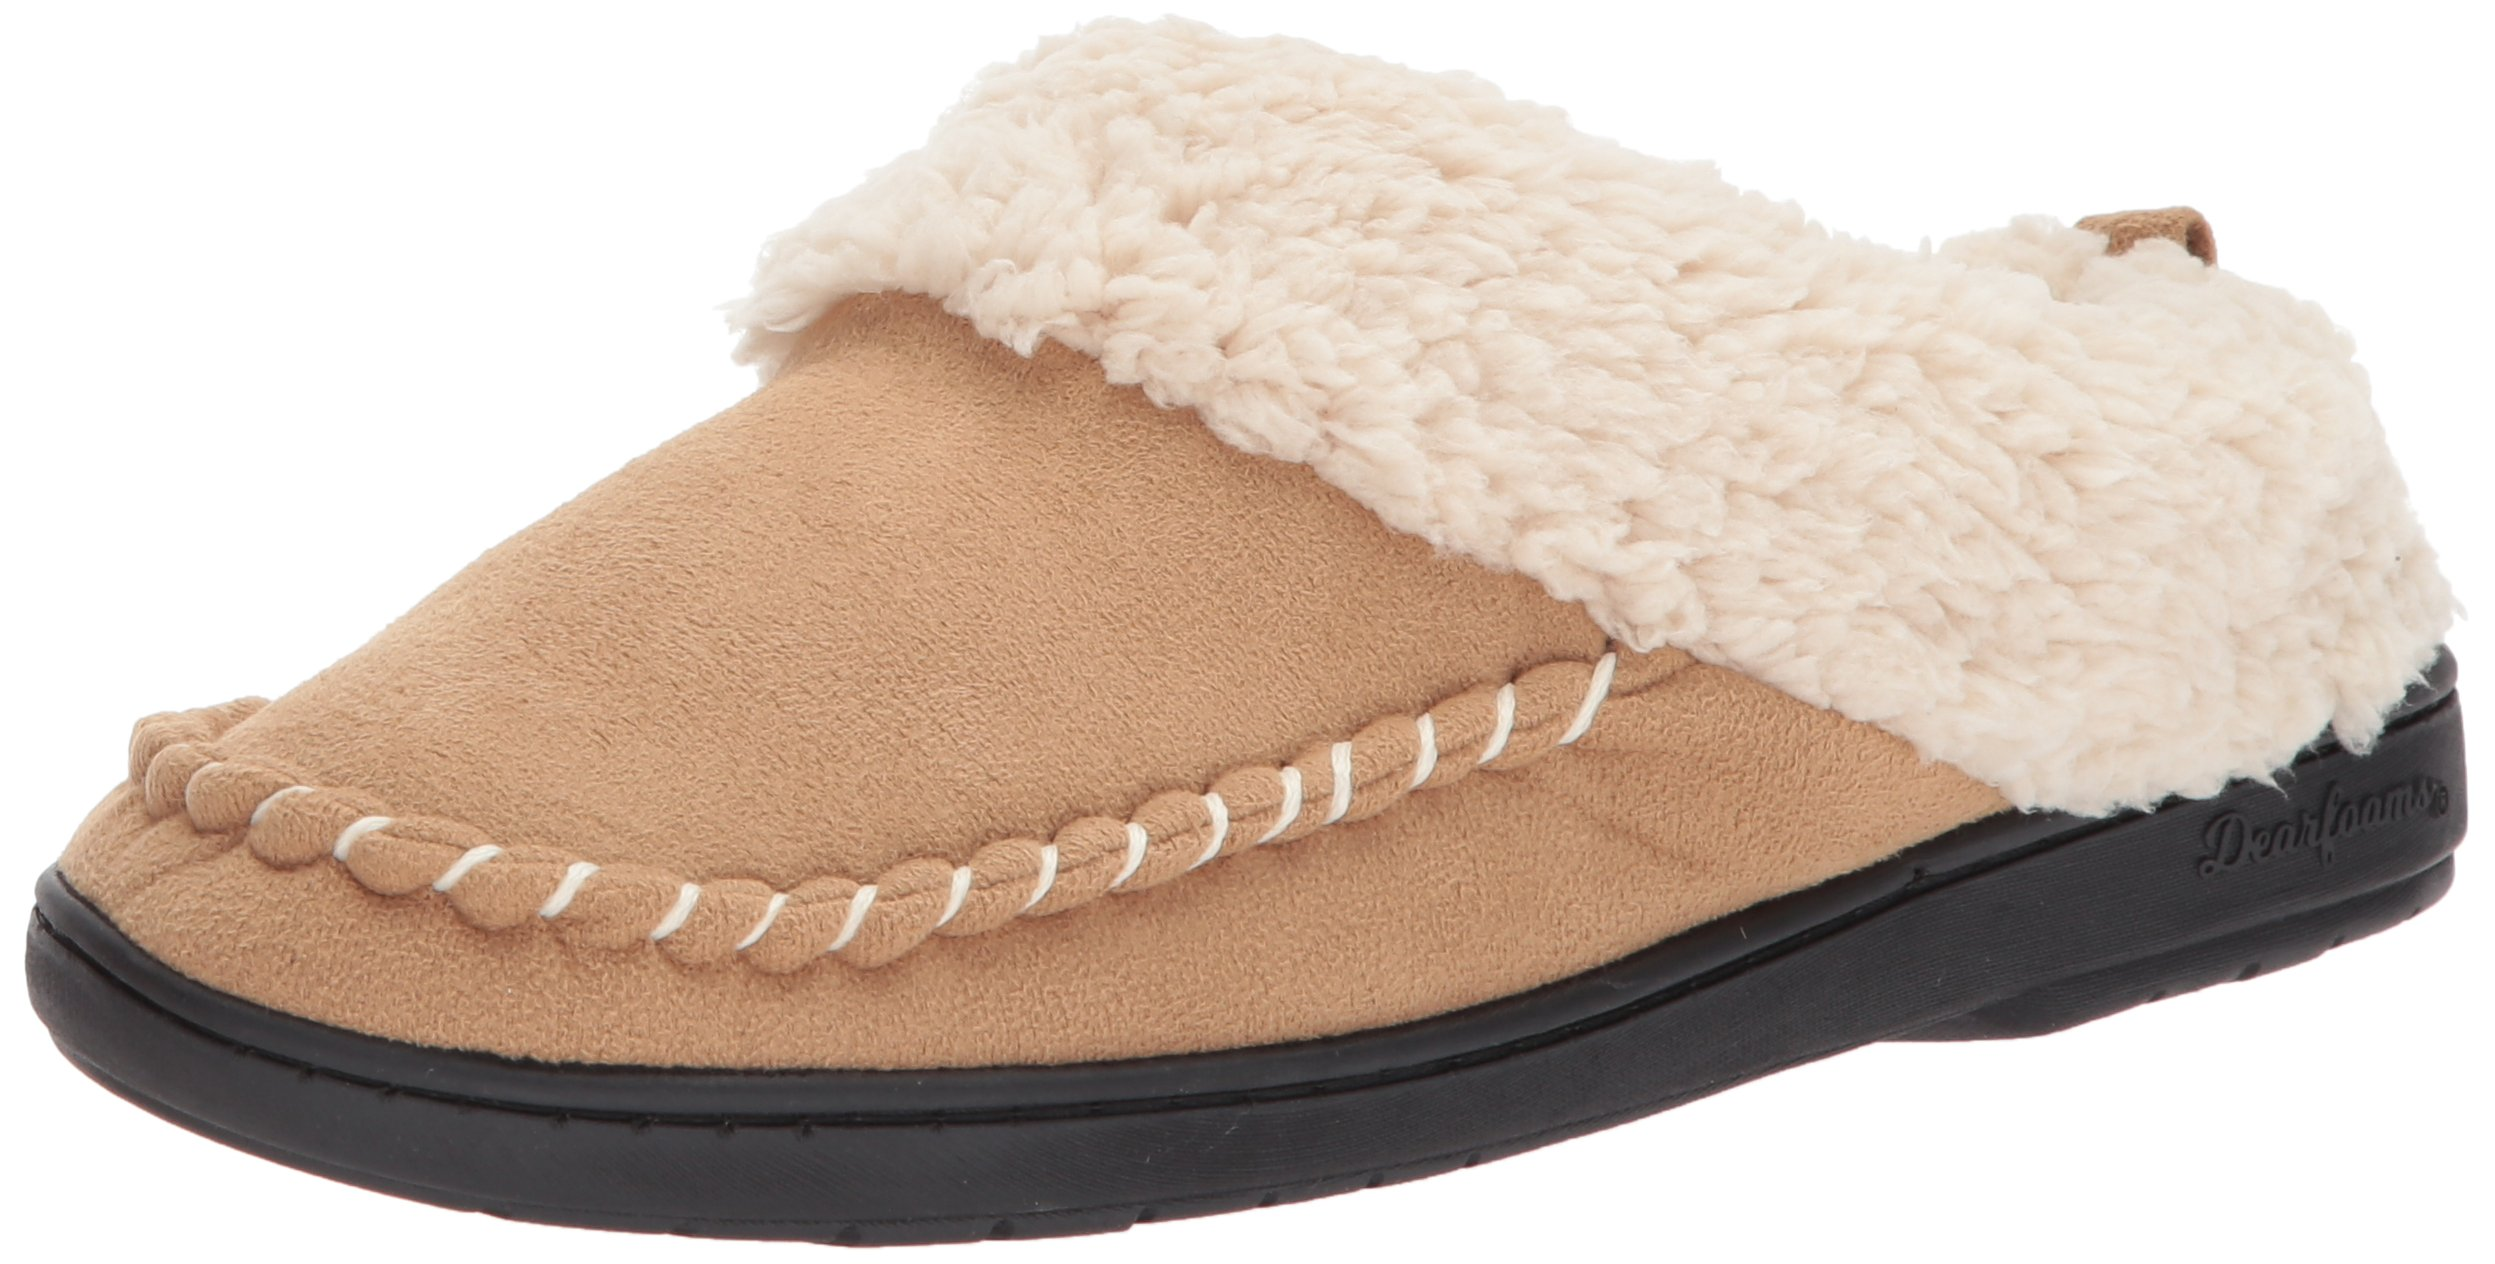 Dearfoams Women's MFS Clog with Whipstitch, Desert, XL Medium US